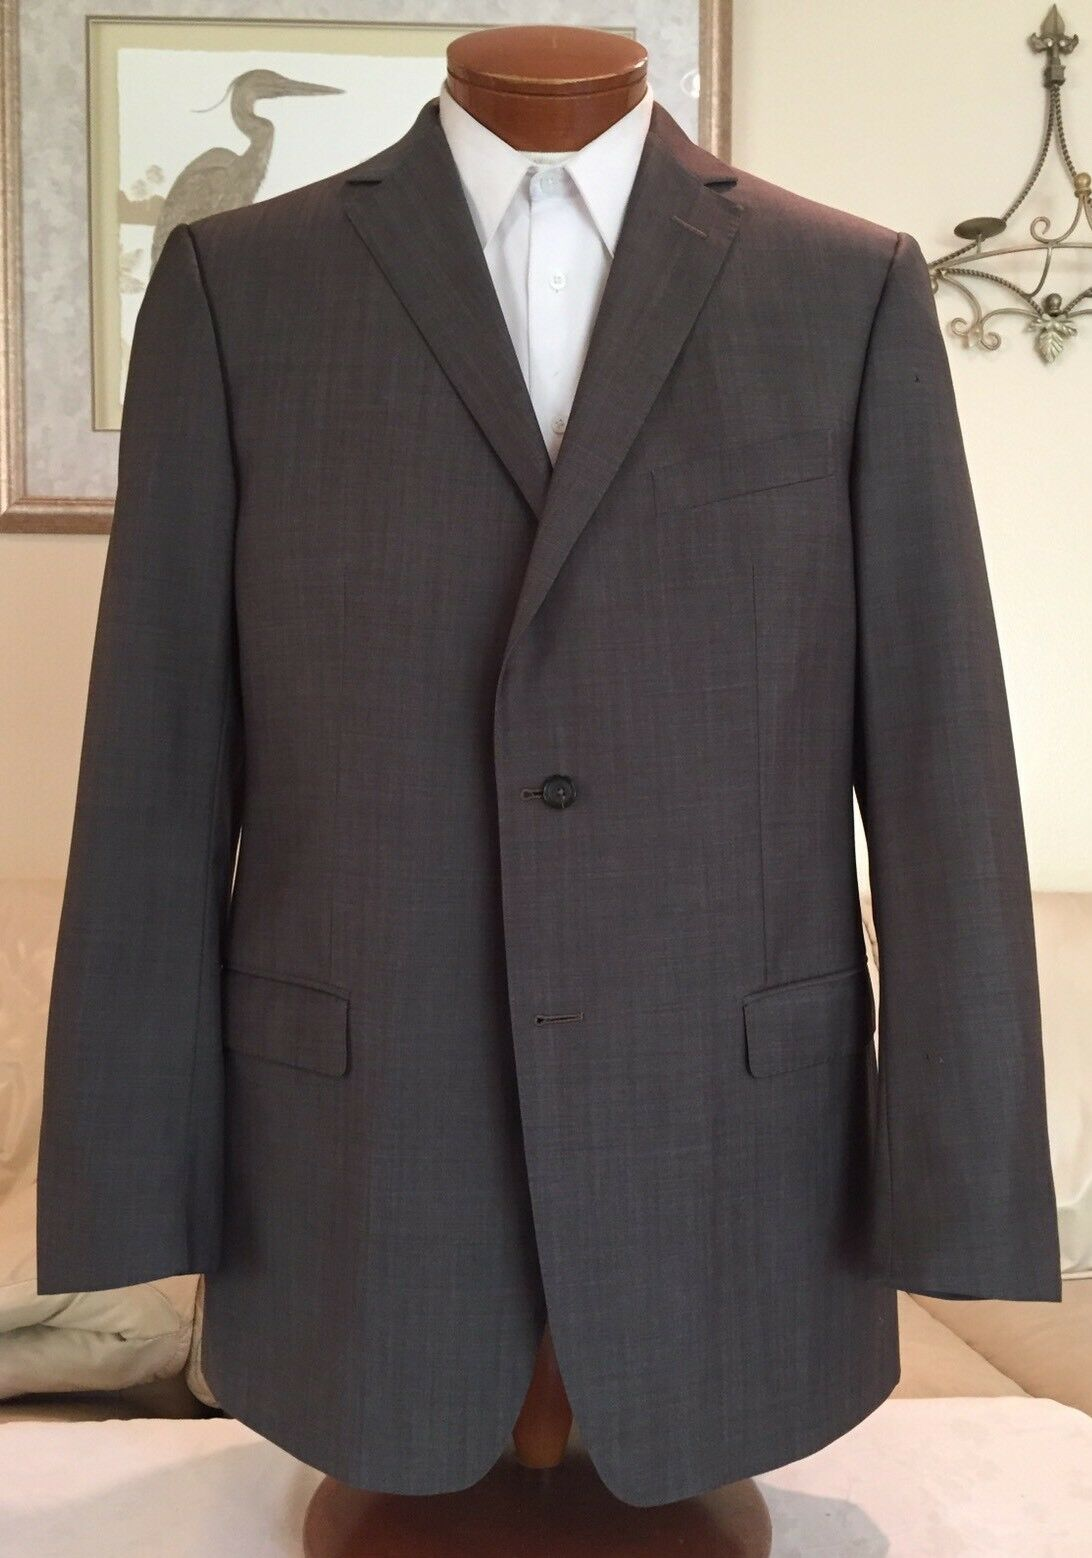 Z Zegna City Mens Brown 2 Btn Dual Vent Suit Sz 44L